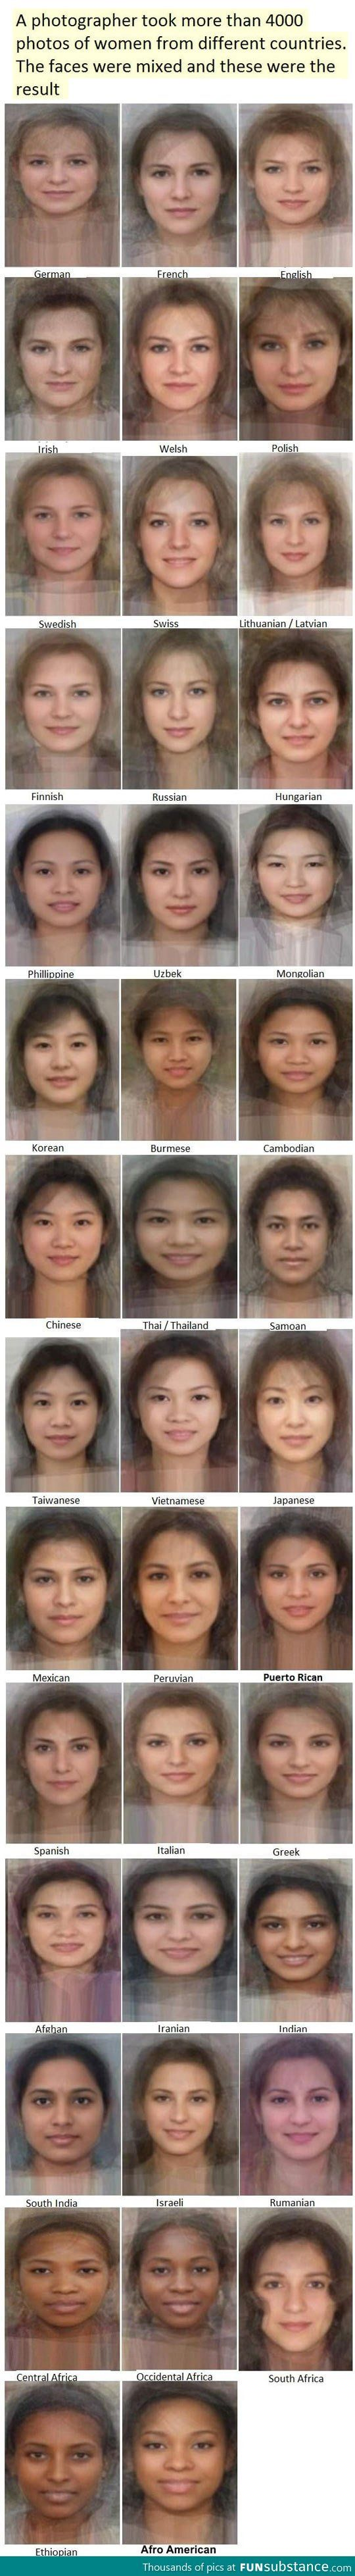 The average woman from each country